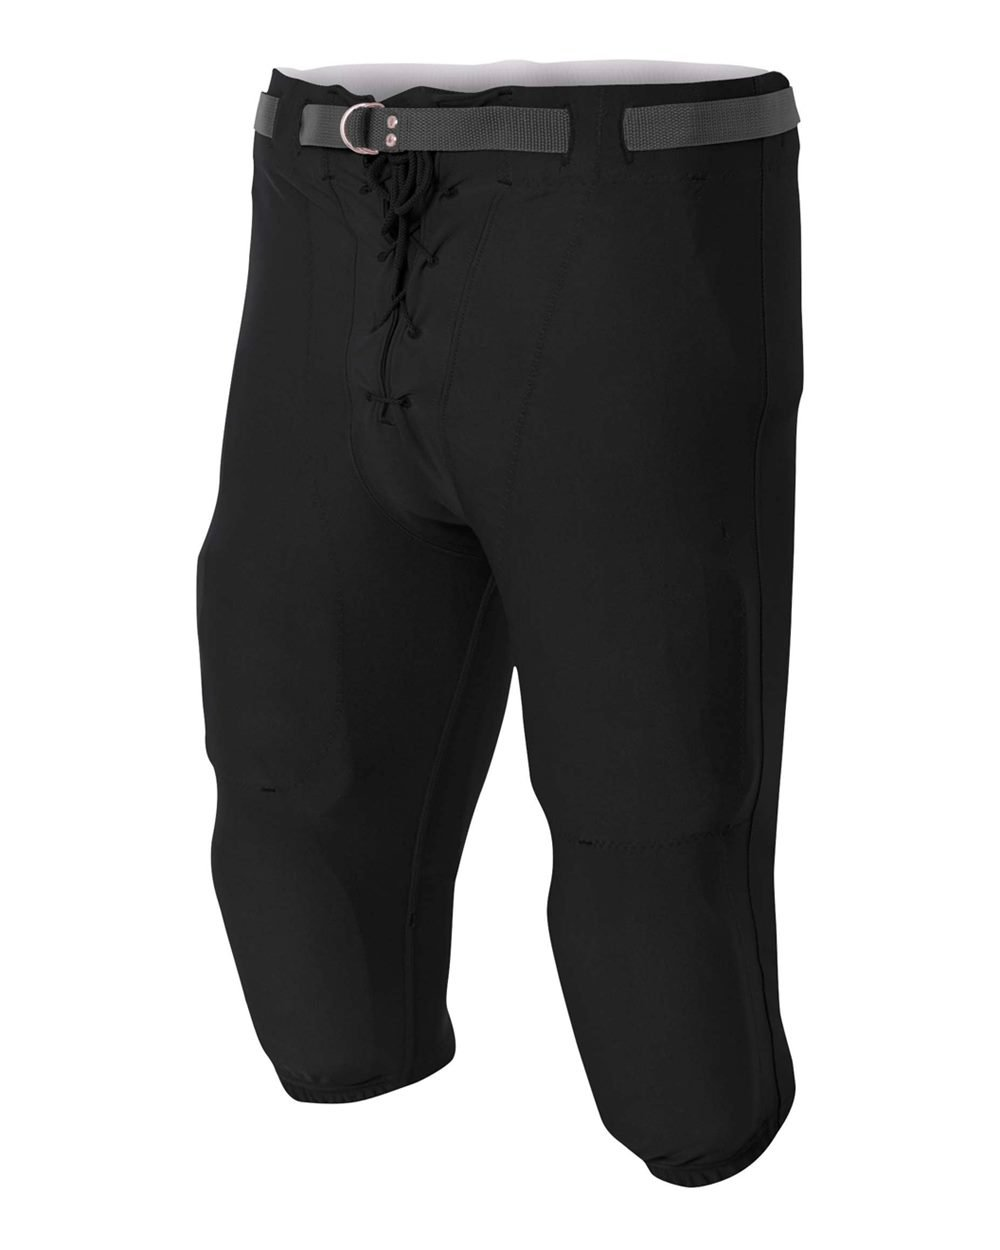 A4 NB6141-BLK Game Pants, Small, Black